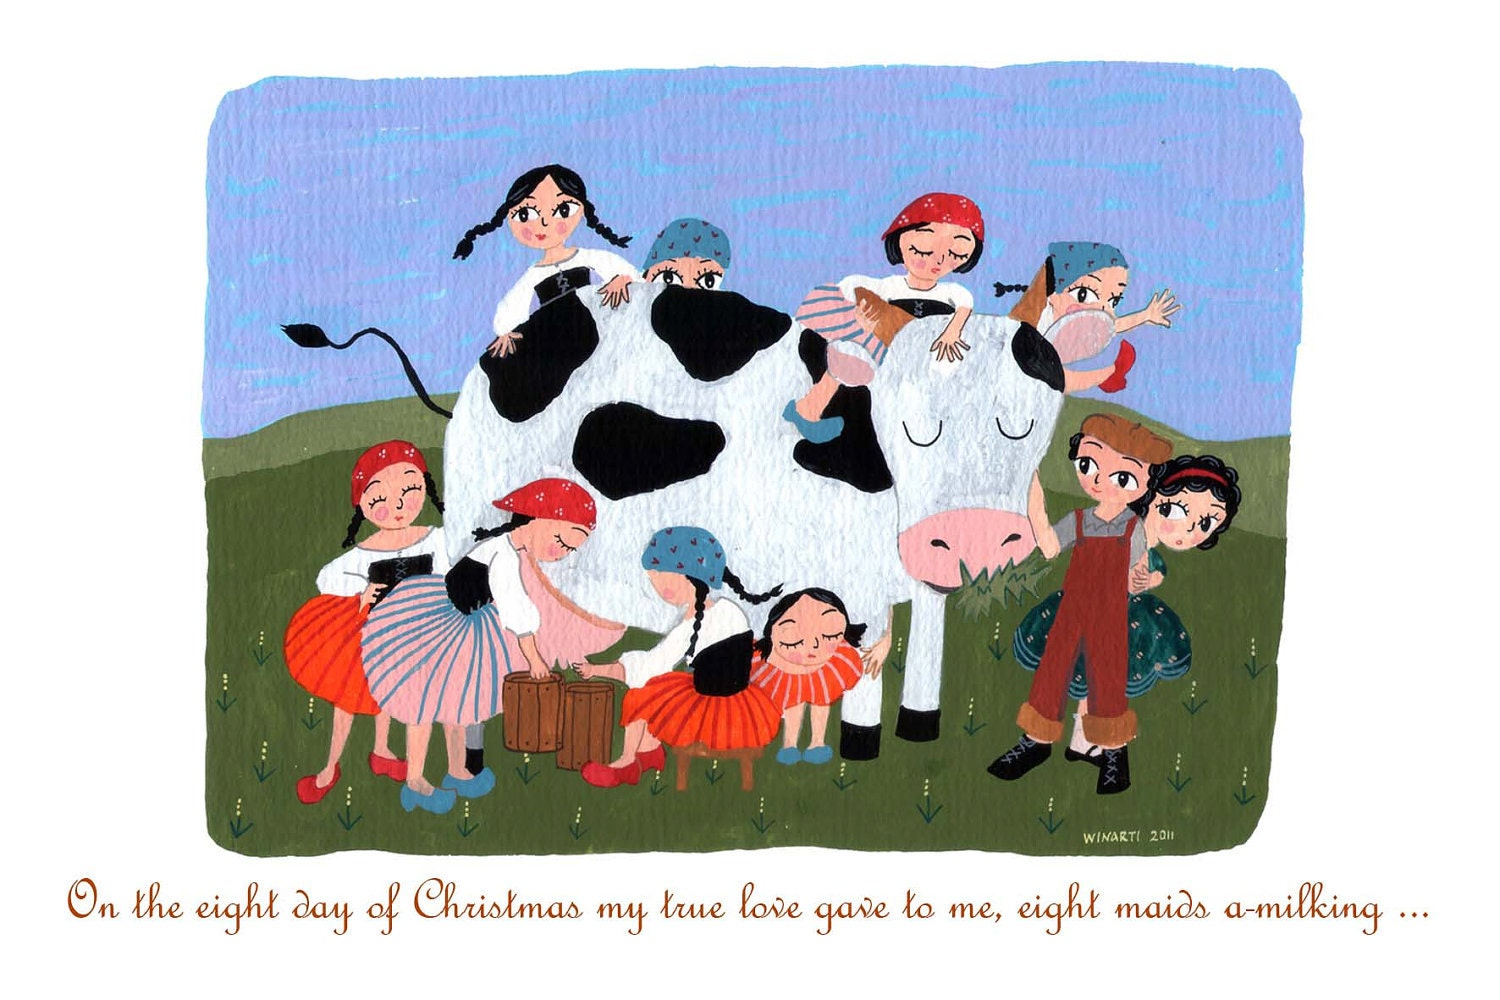 "8th Day of Christmas - 4"" x 6"" postcard"